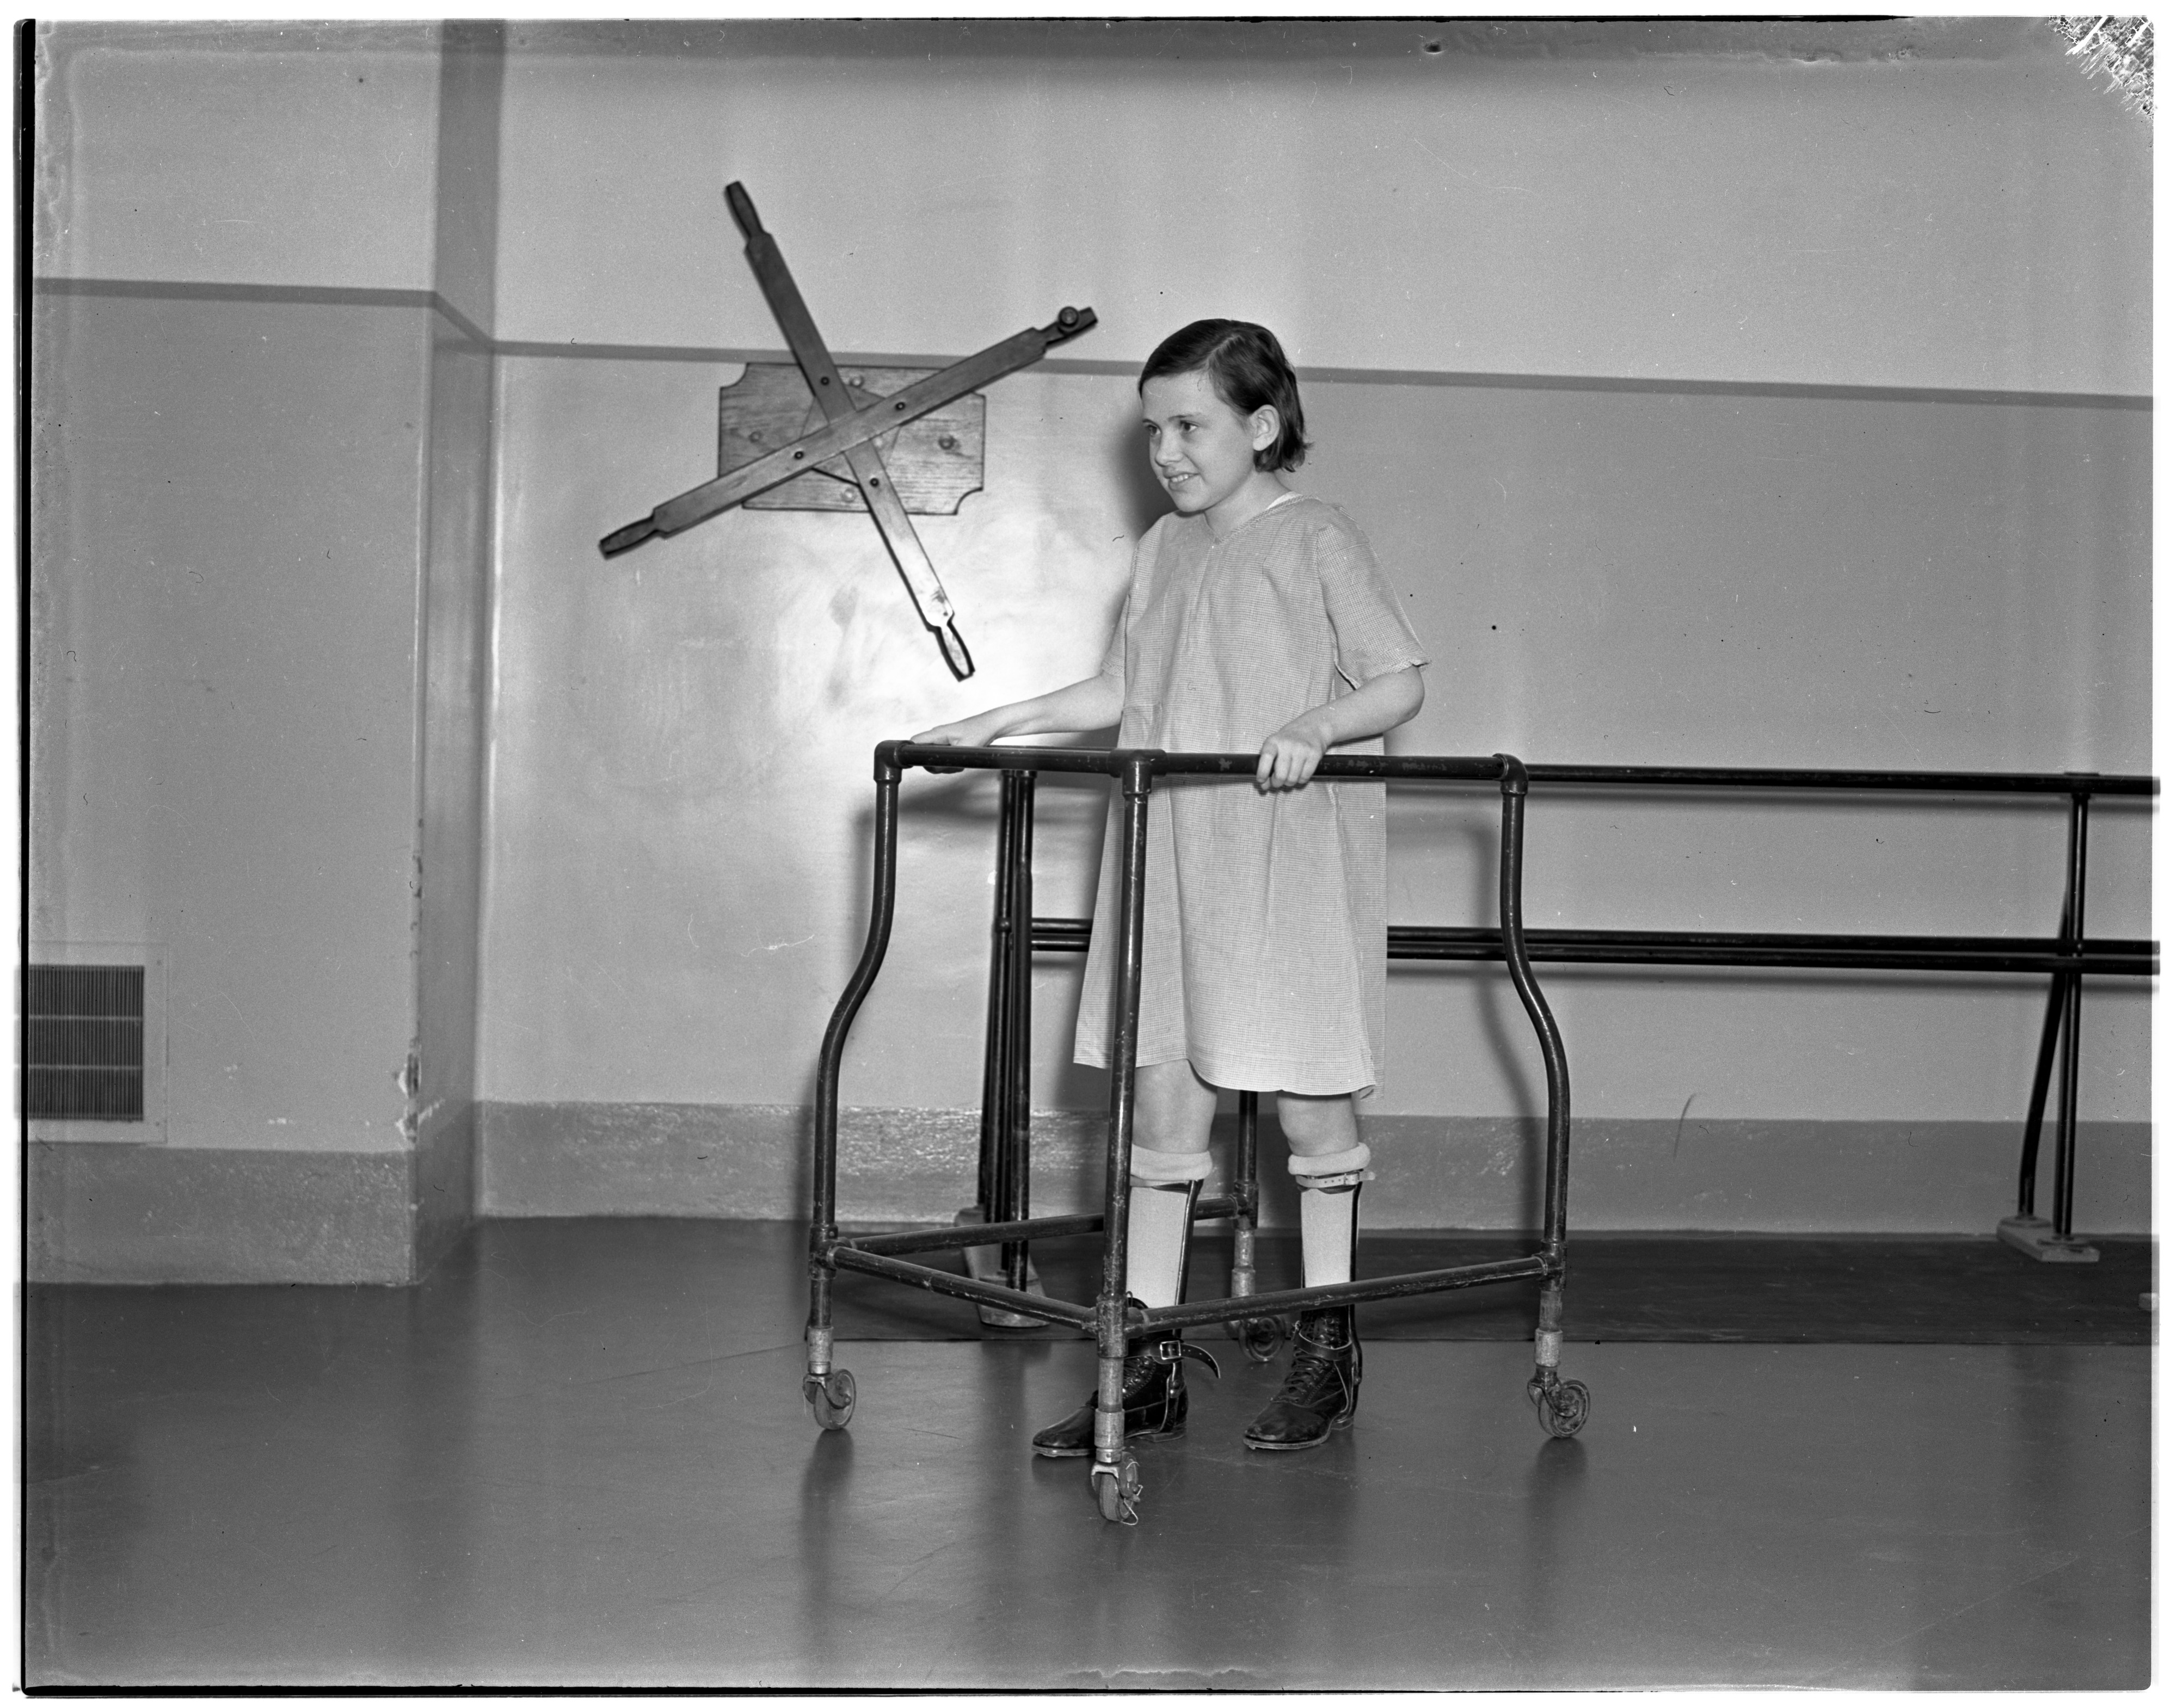 Polio Patient Exercises at University Hospital Physical Therapy Center, January 1938 image